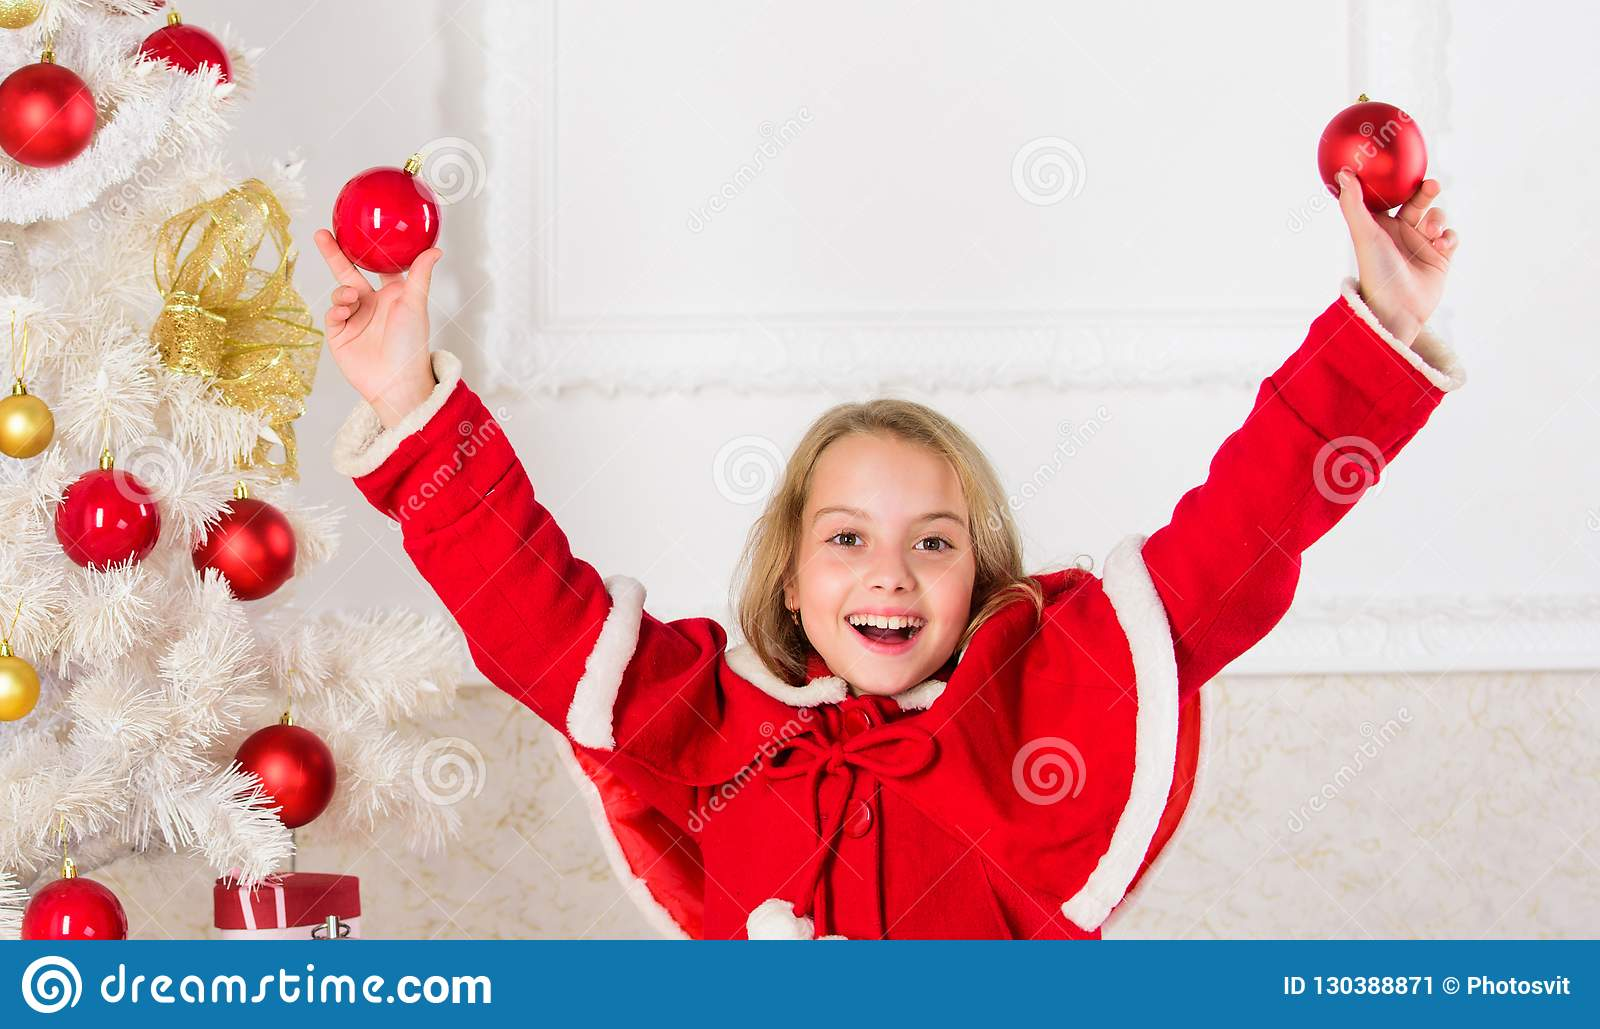 Girl smiling face hold balls ornaments white interior background. Let kid decorate christmas tree. Favorite part